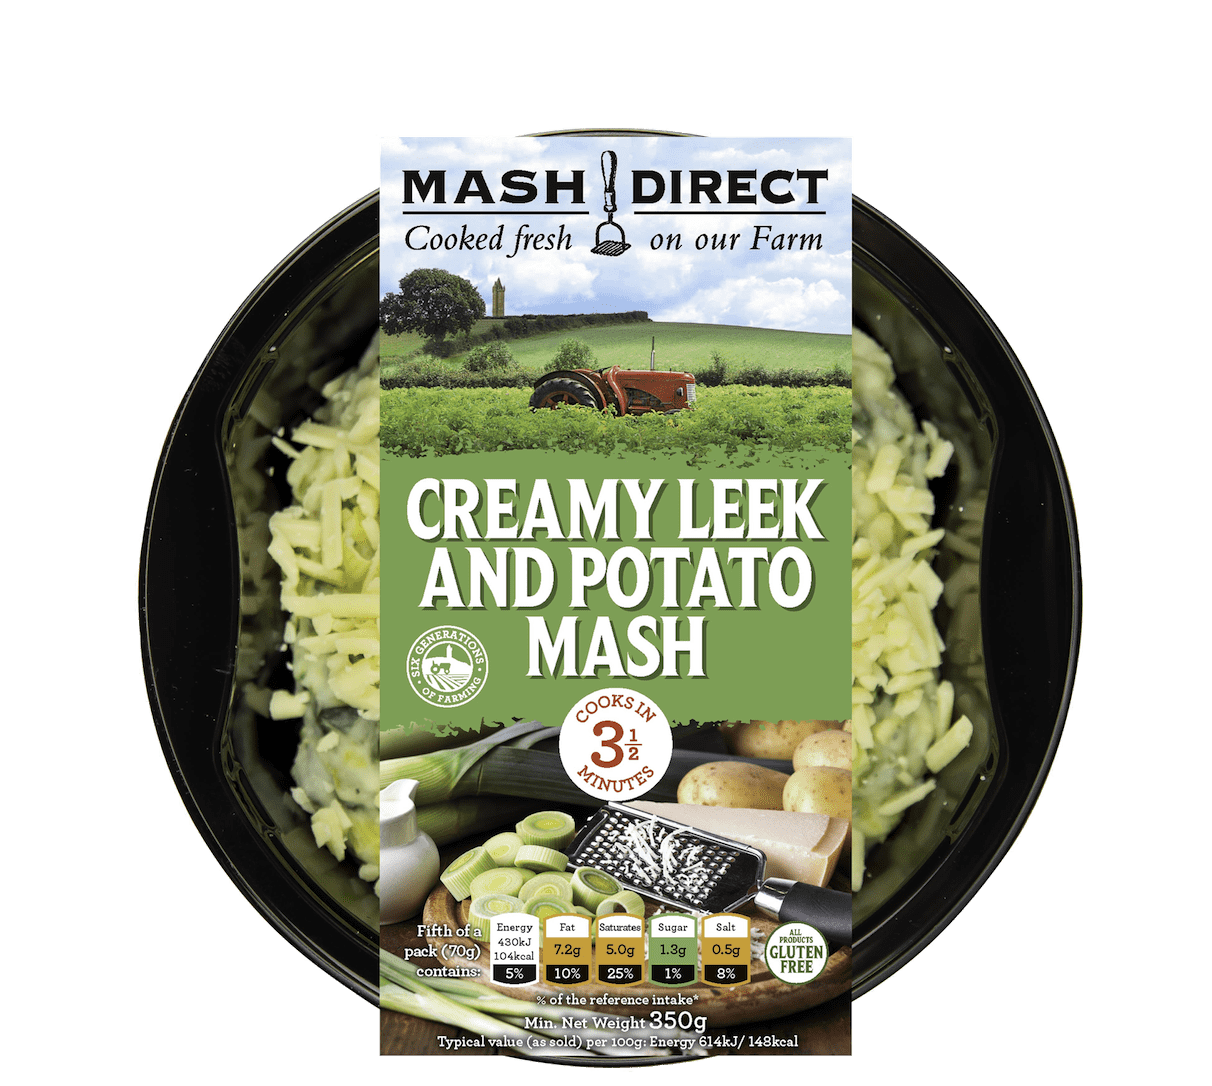 Creamy Leek and Potato Mash